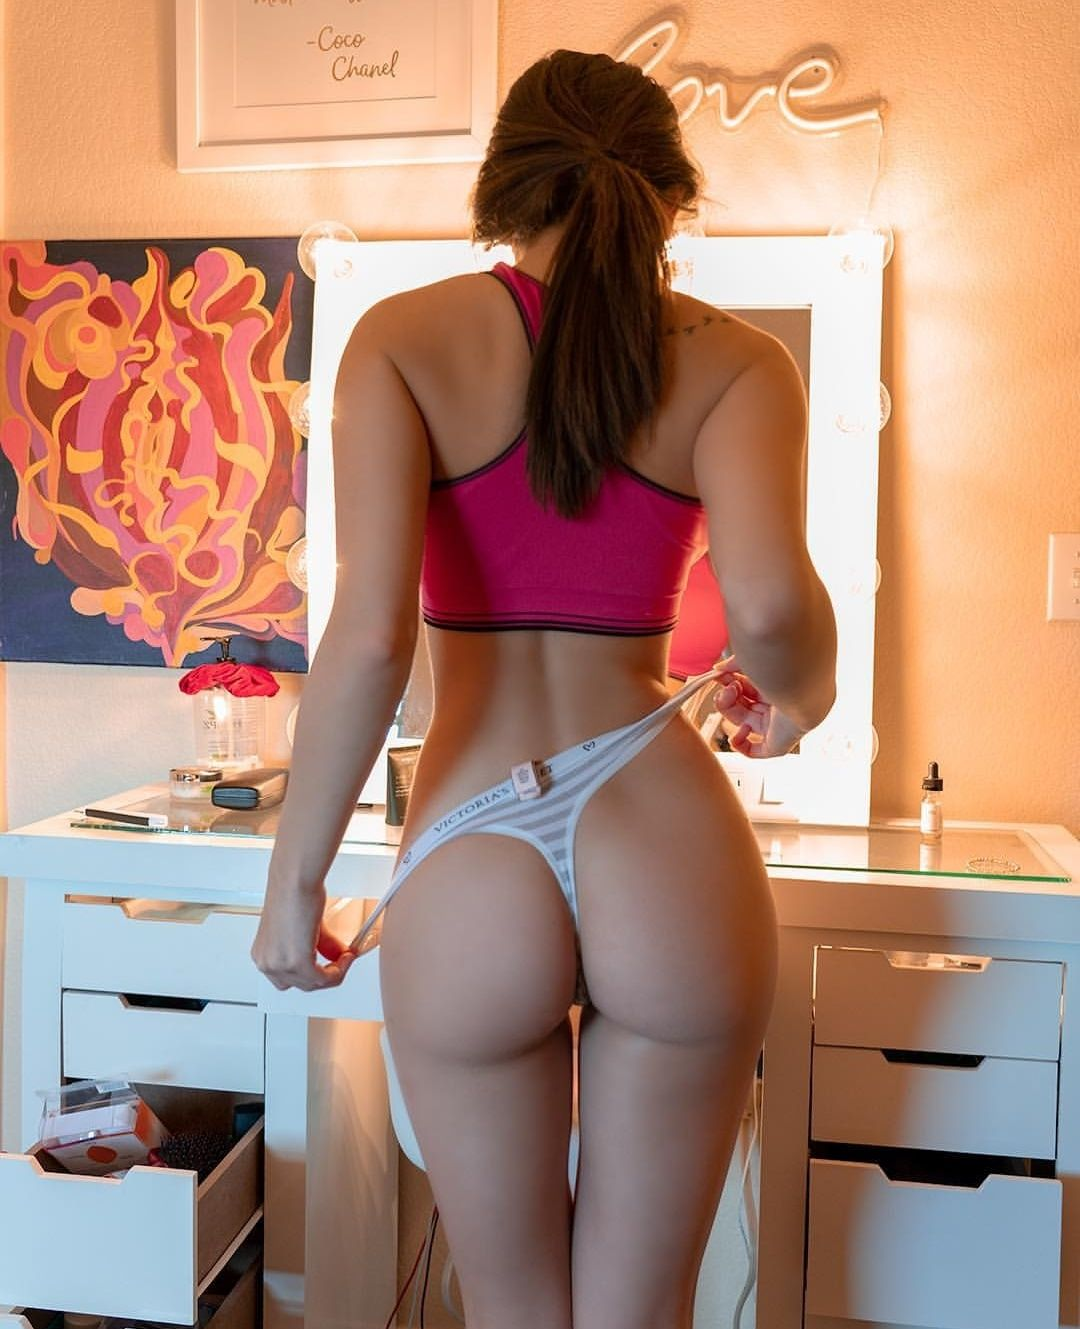 Violet Summers Nude Leaked Photos 0031